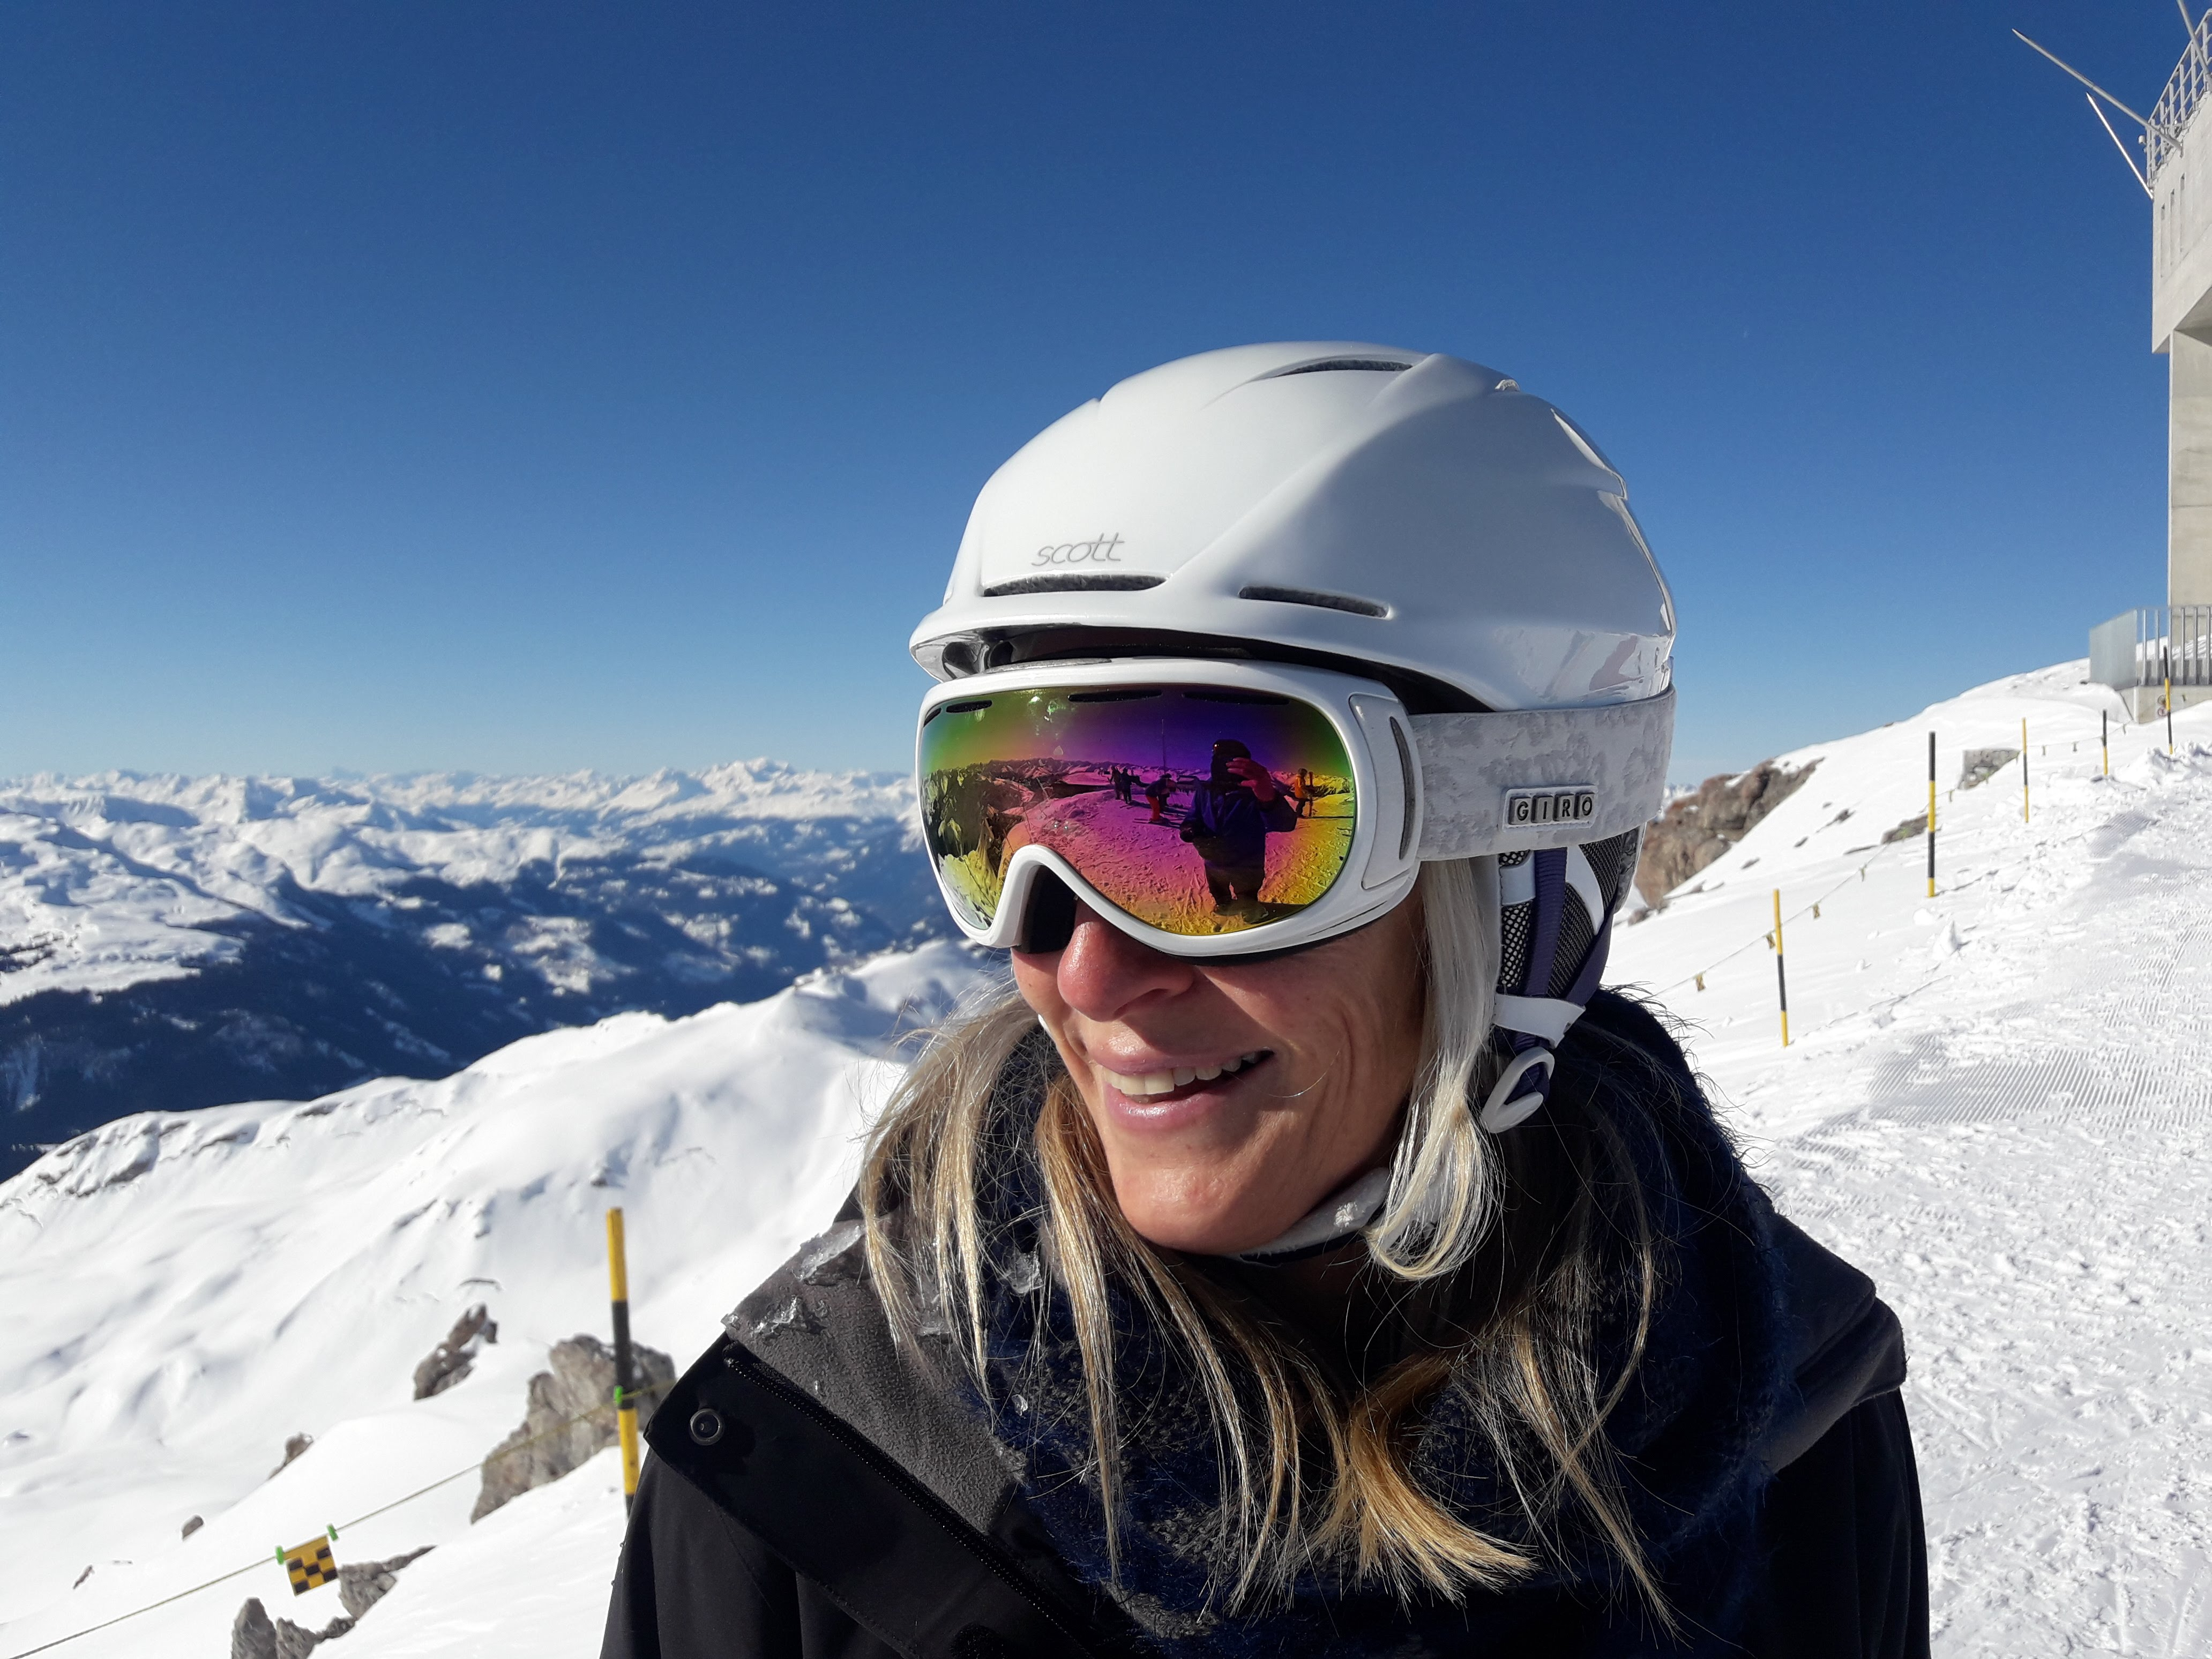 Andrea, private Ski Instructor for Ben&Joe's, ski school in Klosters  loves different cultutures!